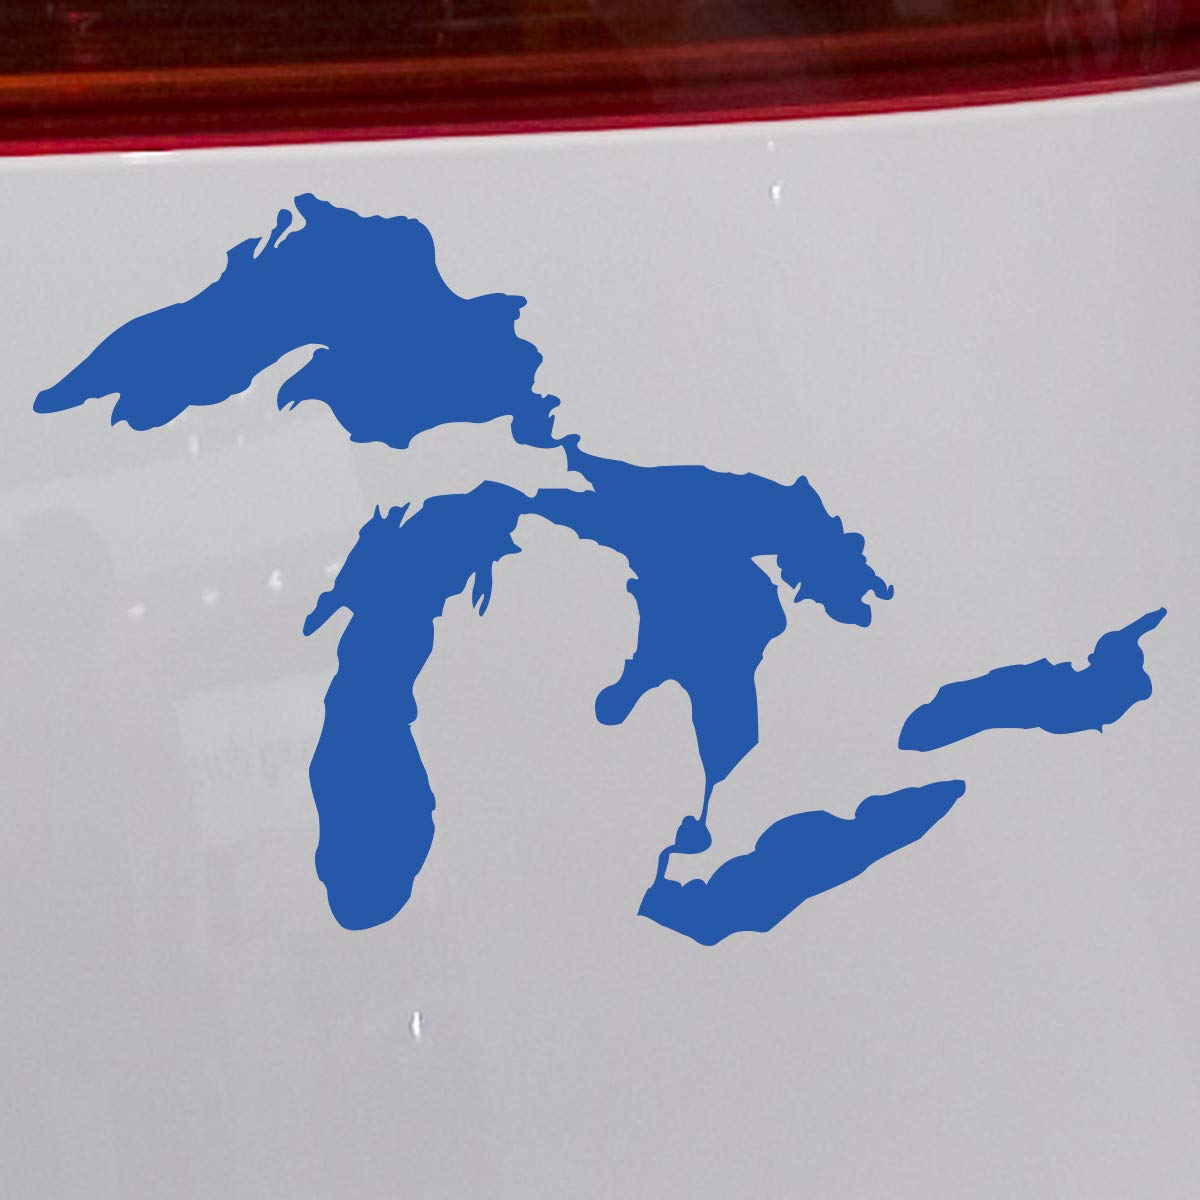 Nudge Printing Great Lakes of Michigan Sticker Car Decal Window Bumper Sticker Laptop Sticker 5' Wide (White)